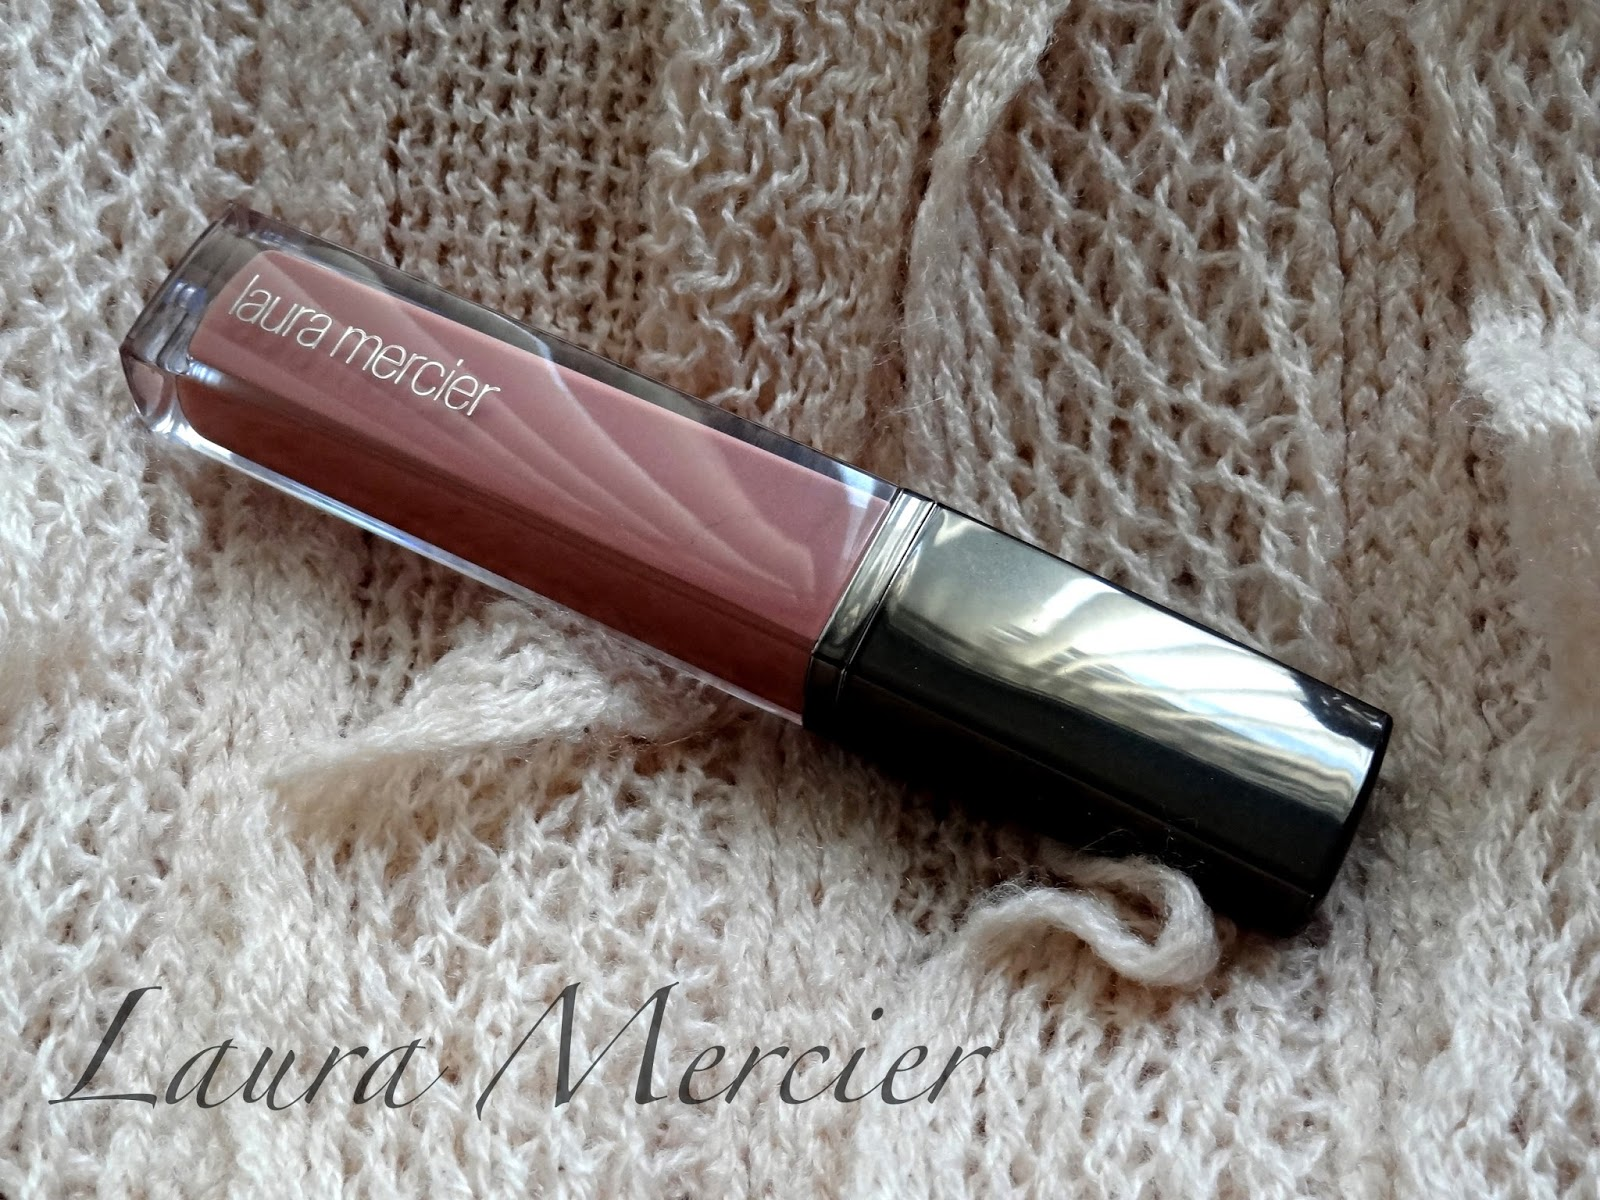 Laura Mercier Paint Wash Liquid Lip Color in Nude Rose